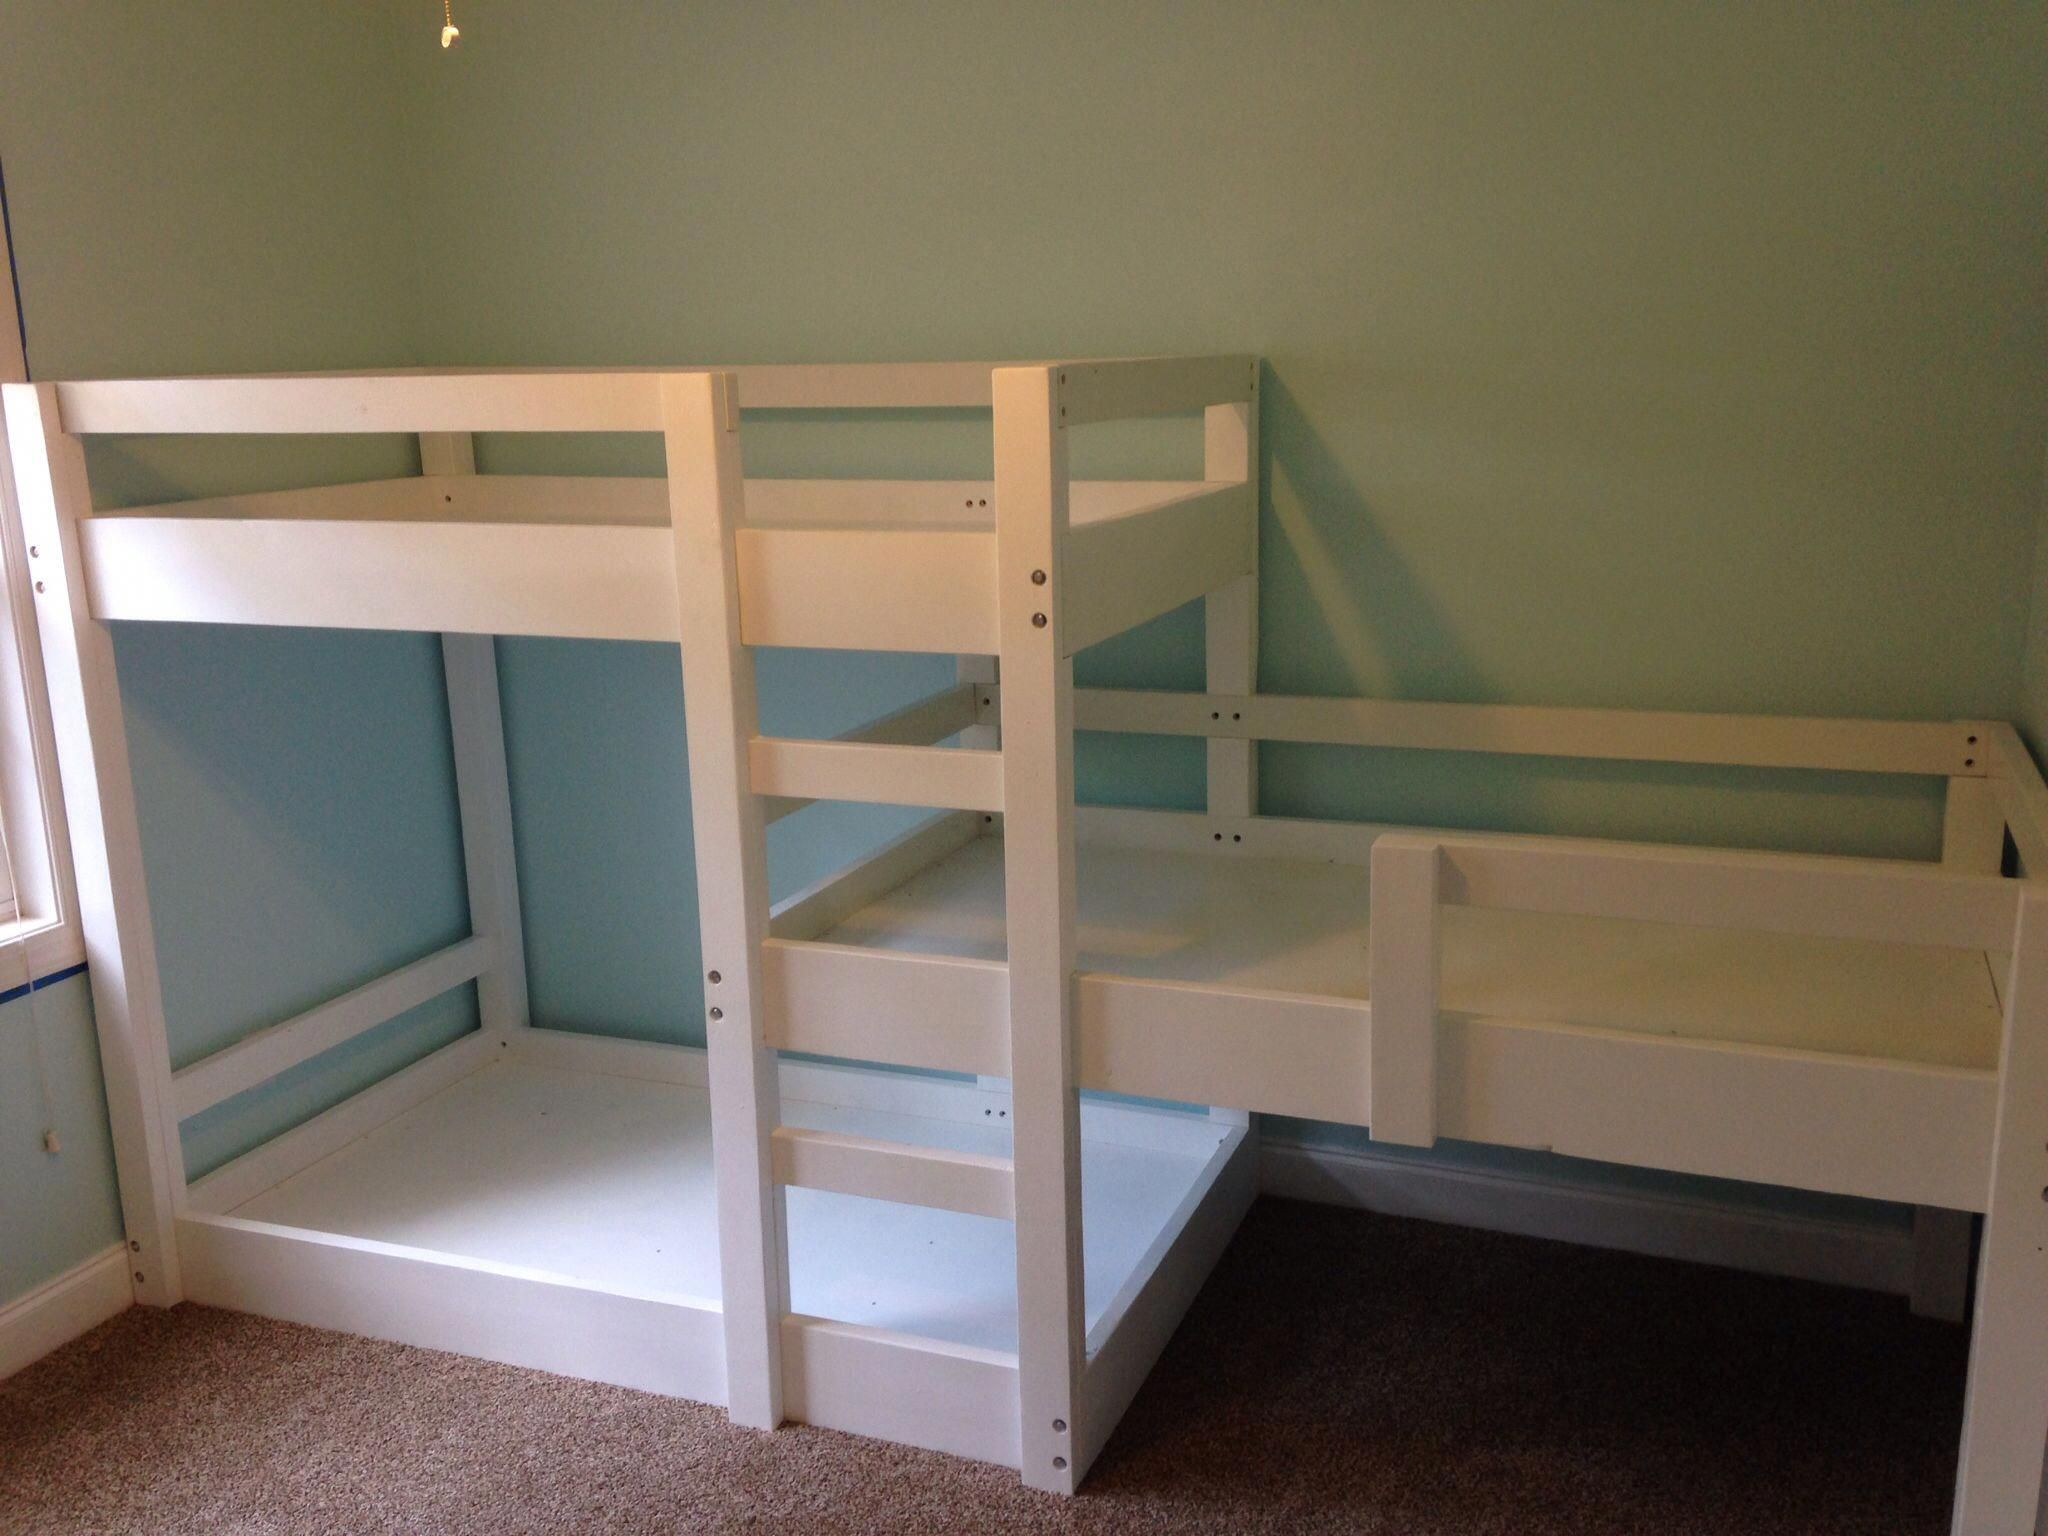 Bunk Beds Xl Twin Over Xl Twin Bunk Beds Twin Over Queen Size